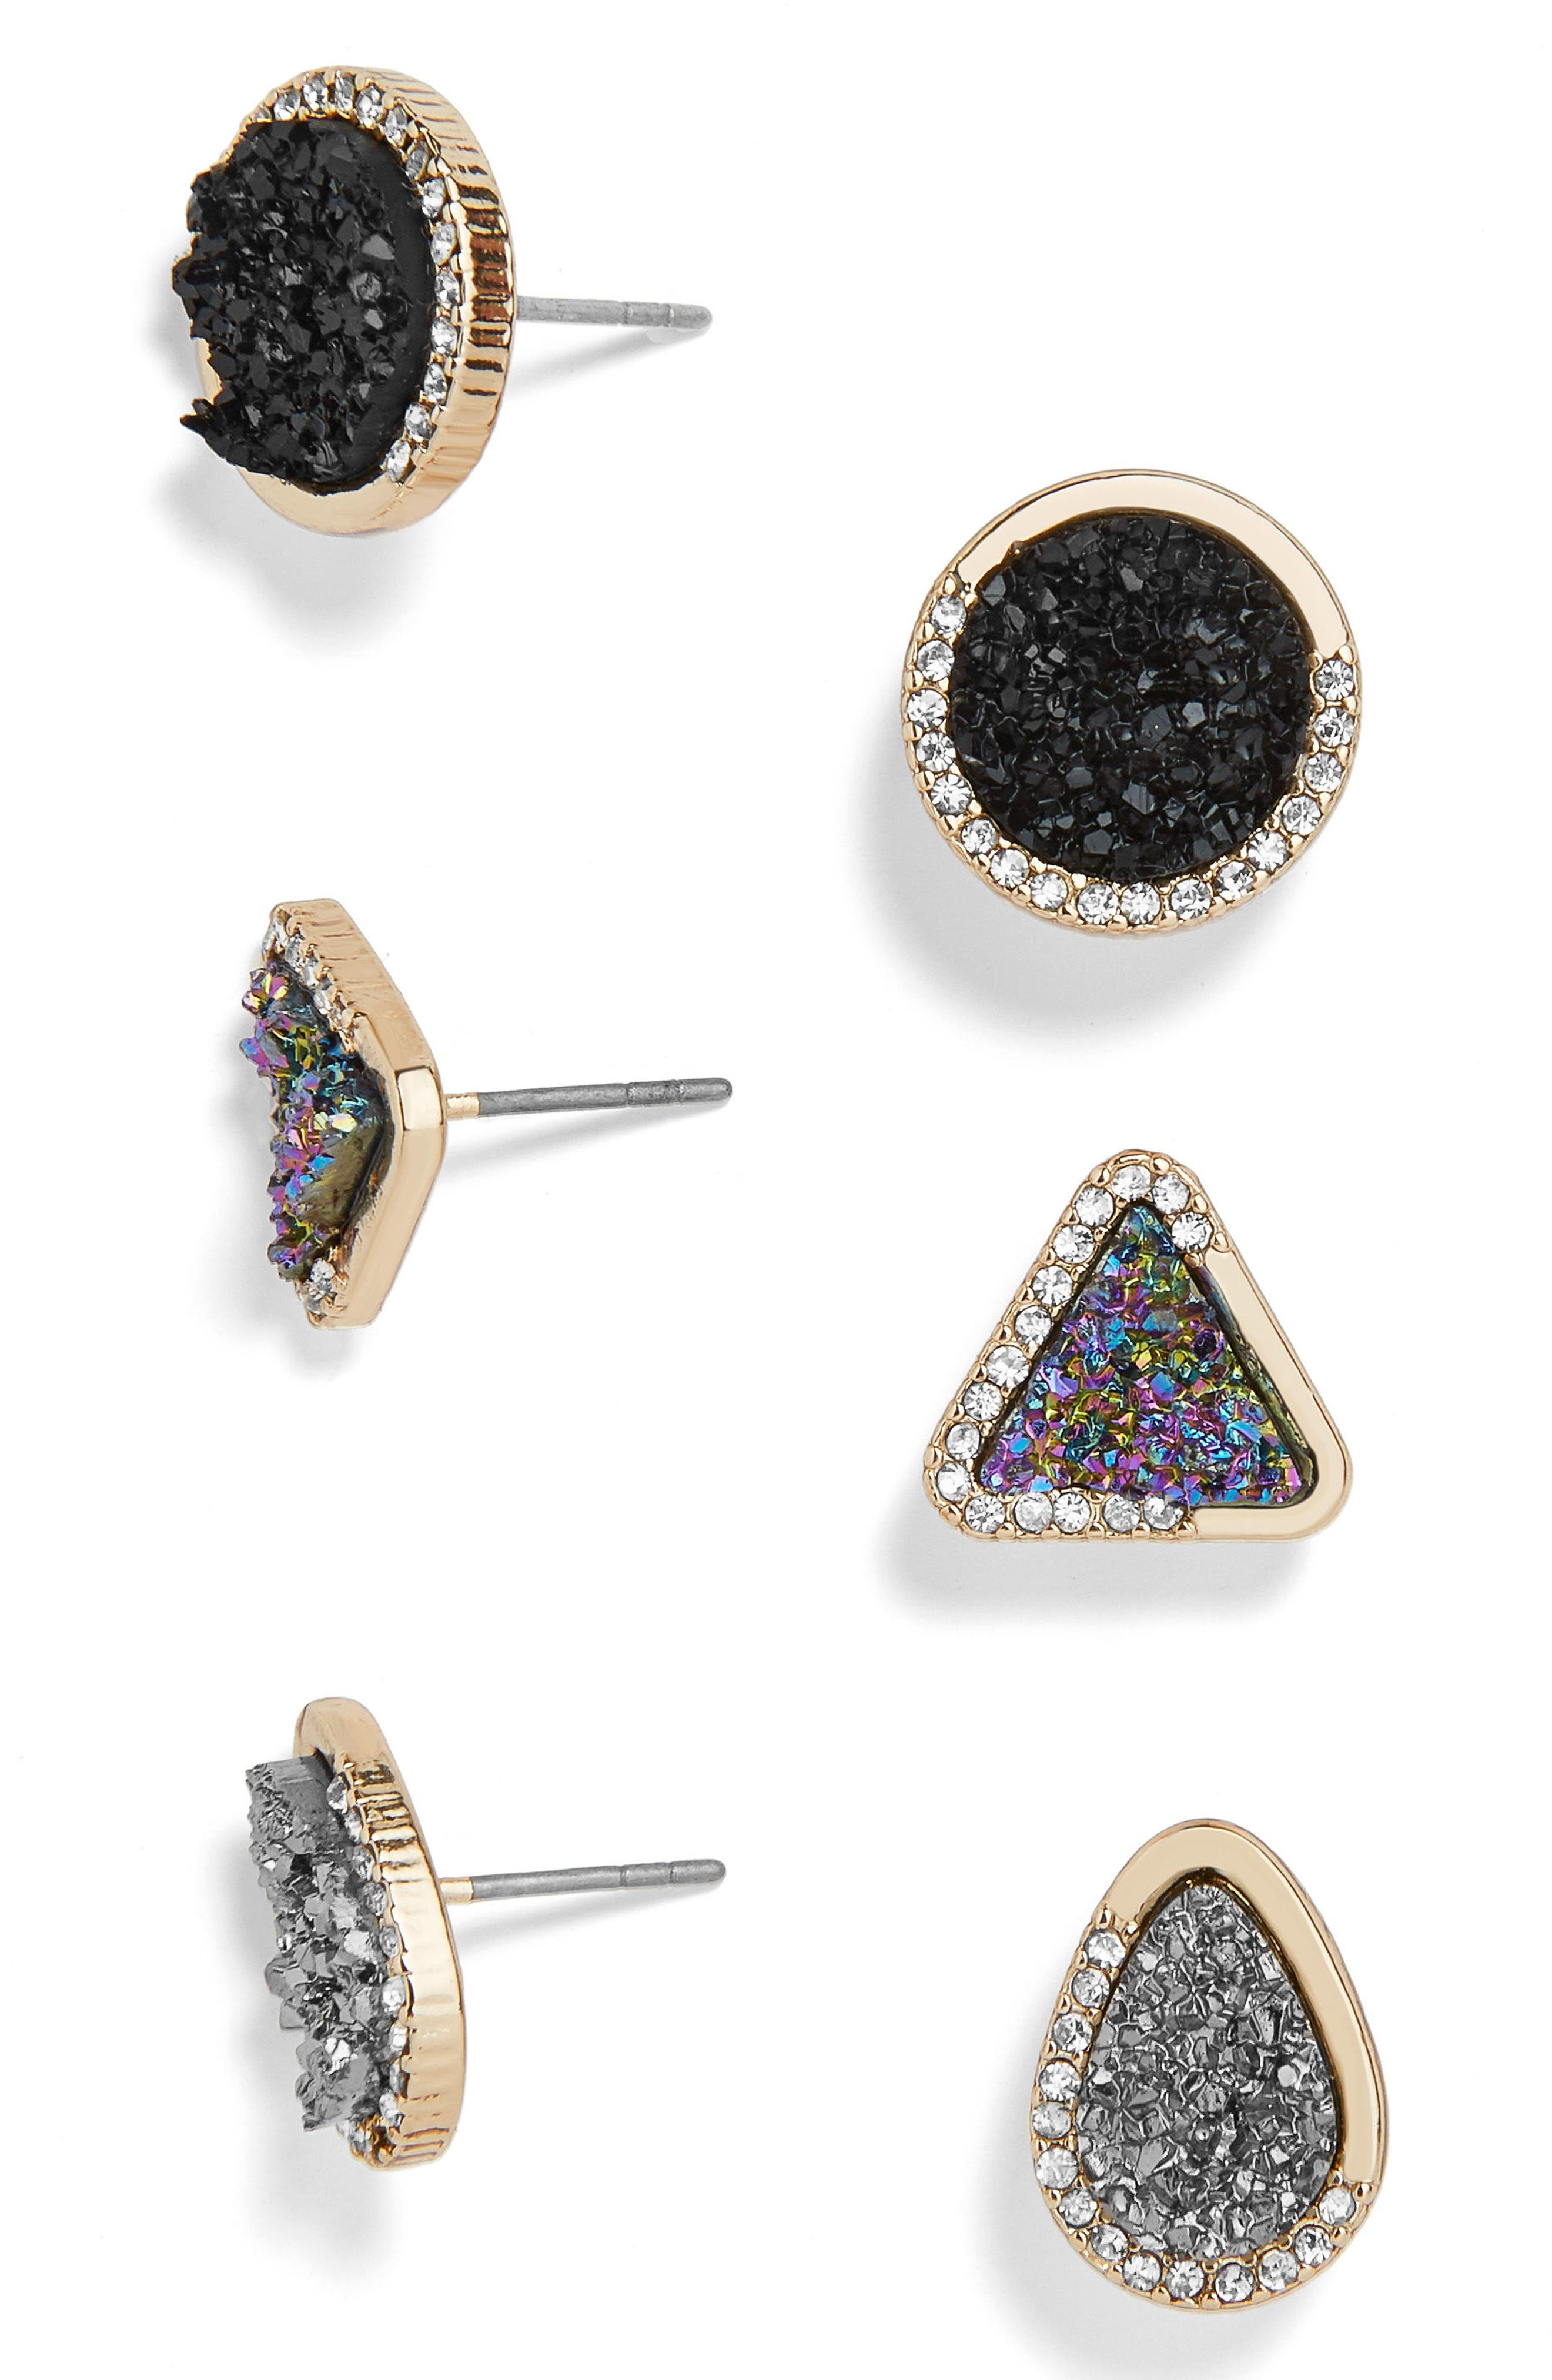 Over the Moon Set of 3 Assorted Stud Earrings,                         Main,                         color, Multi